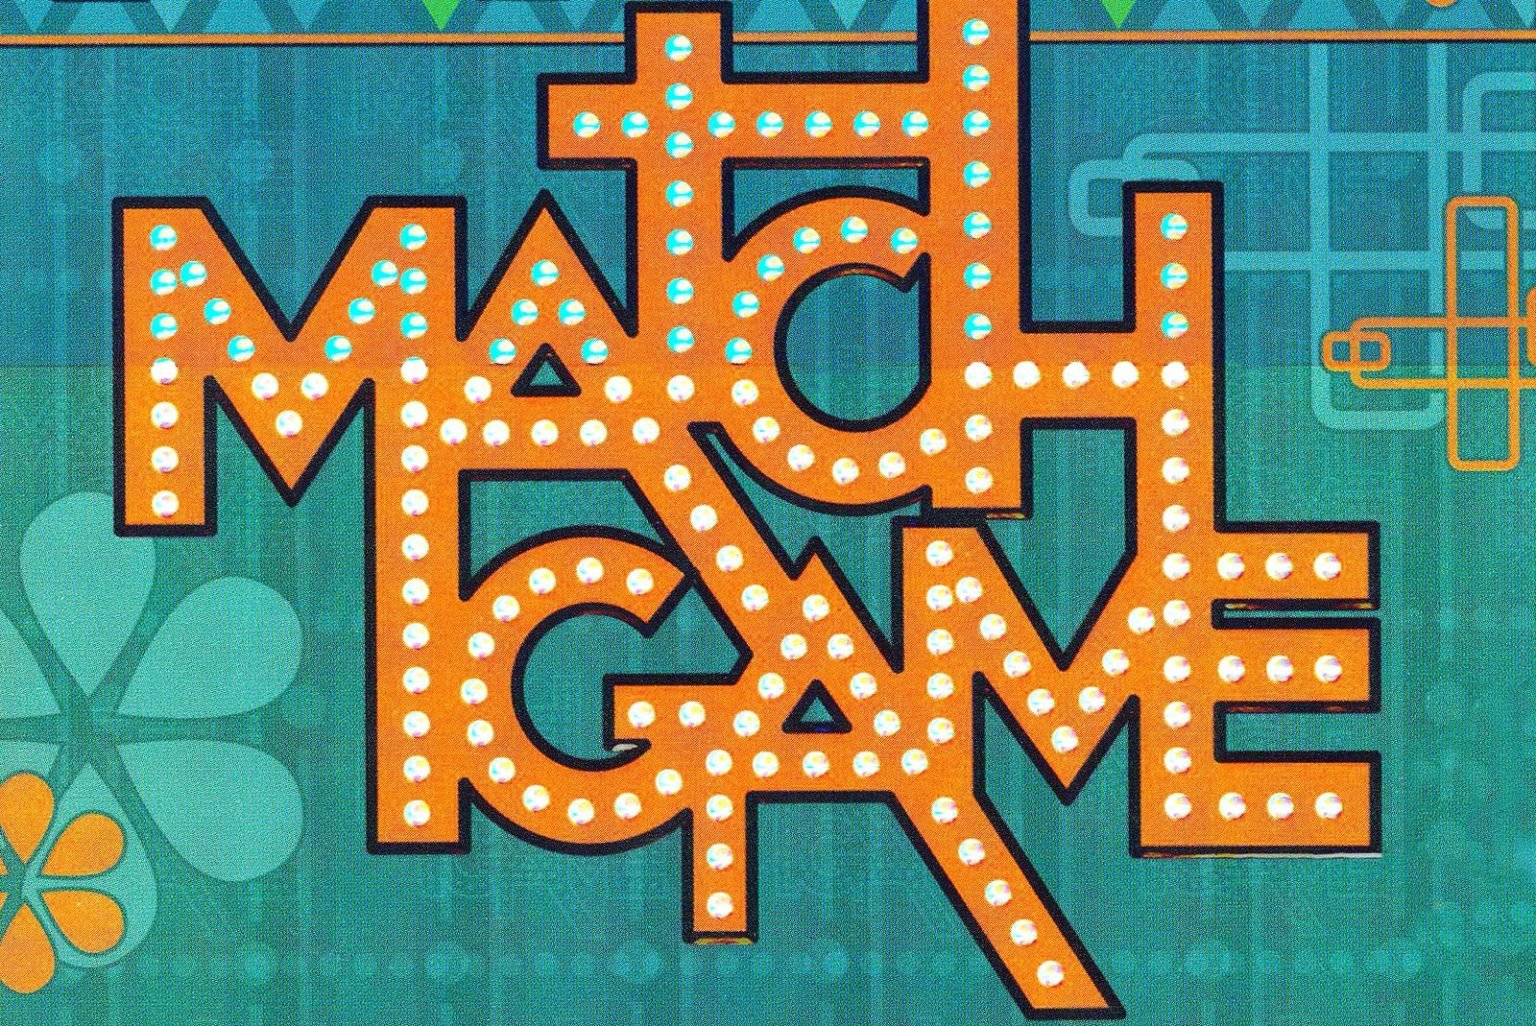 Vintage 1970s Match Game TV game show